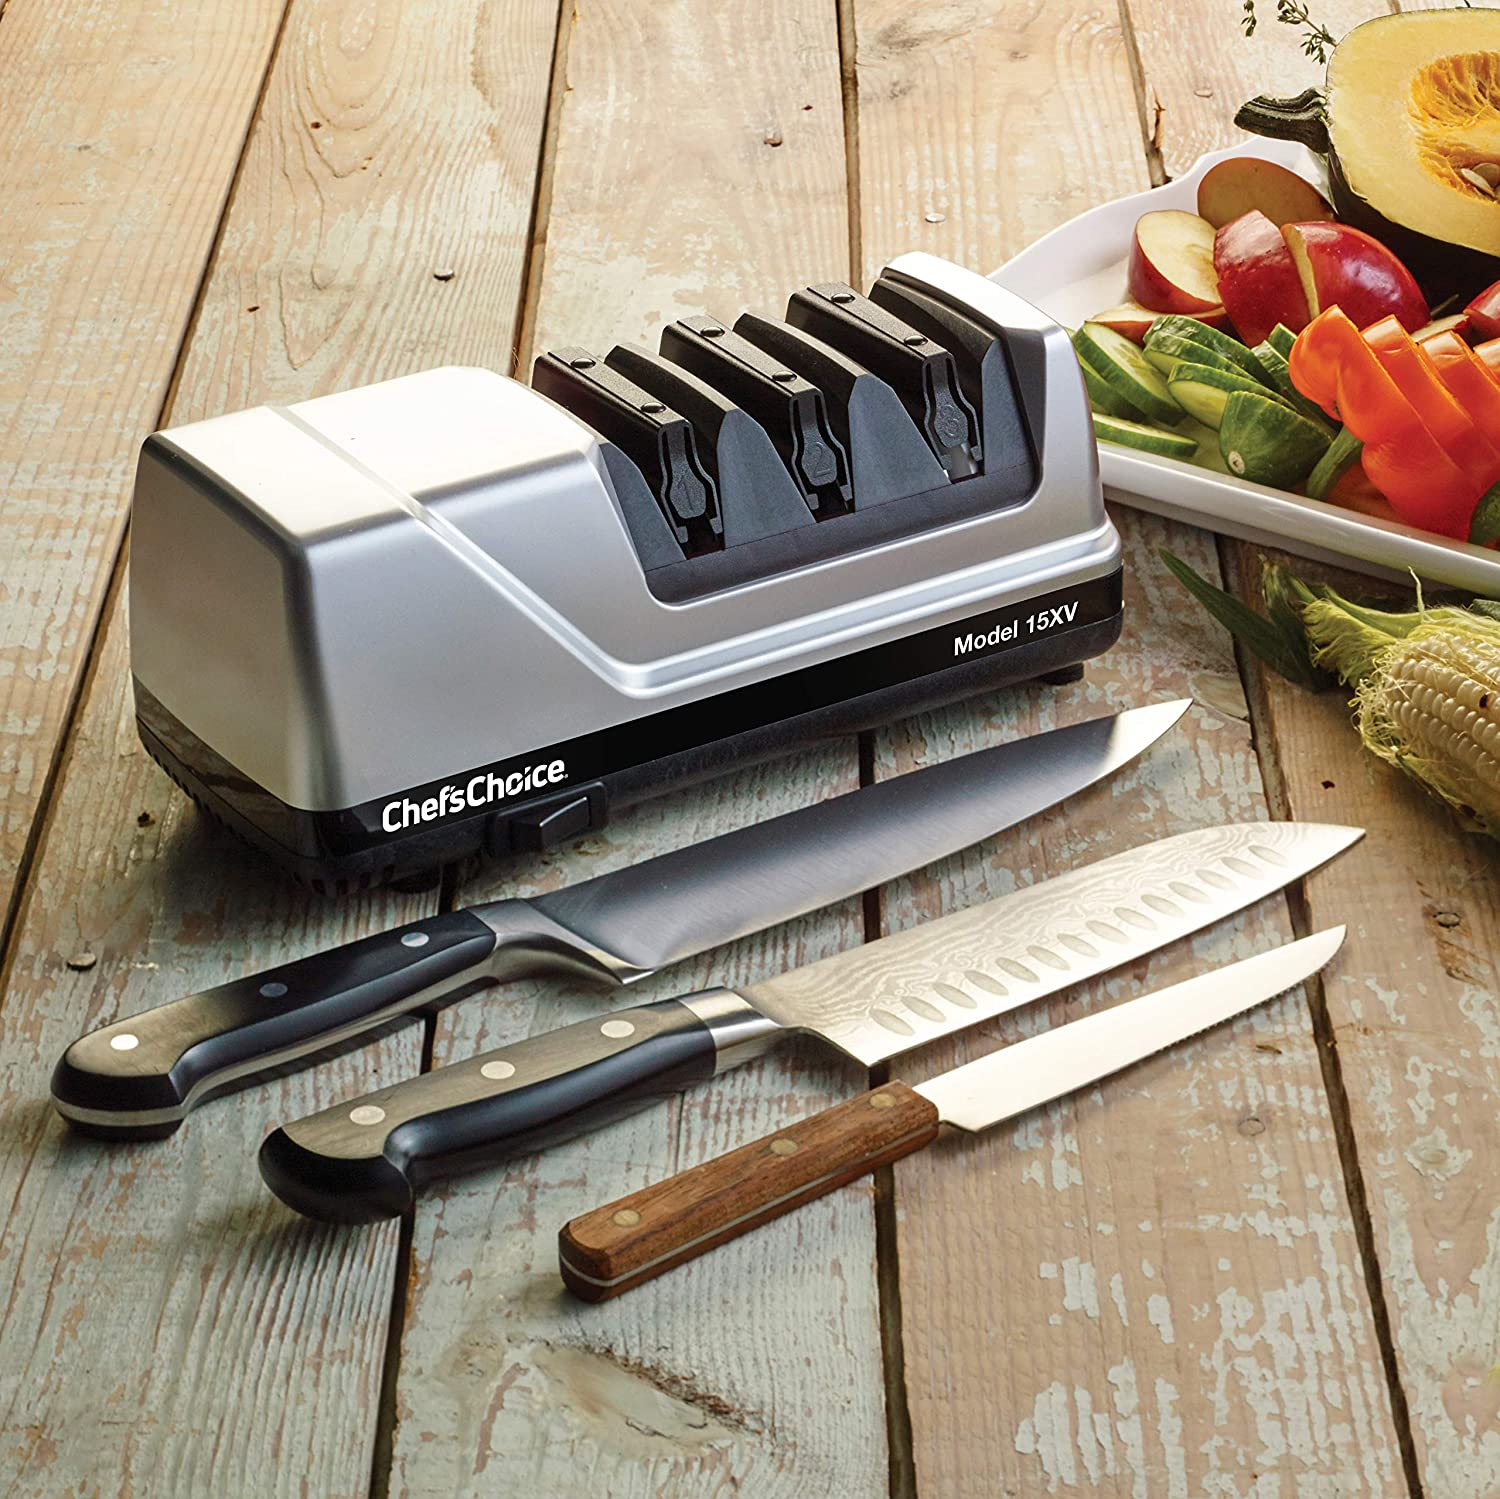 ChefsChoice 15 Trizor XV EdgeSelect Professional Electric Knife Sharpener for Straight and Serrated Knives Diamond Abrasives Patented Sharpening ...